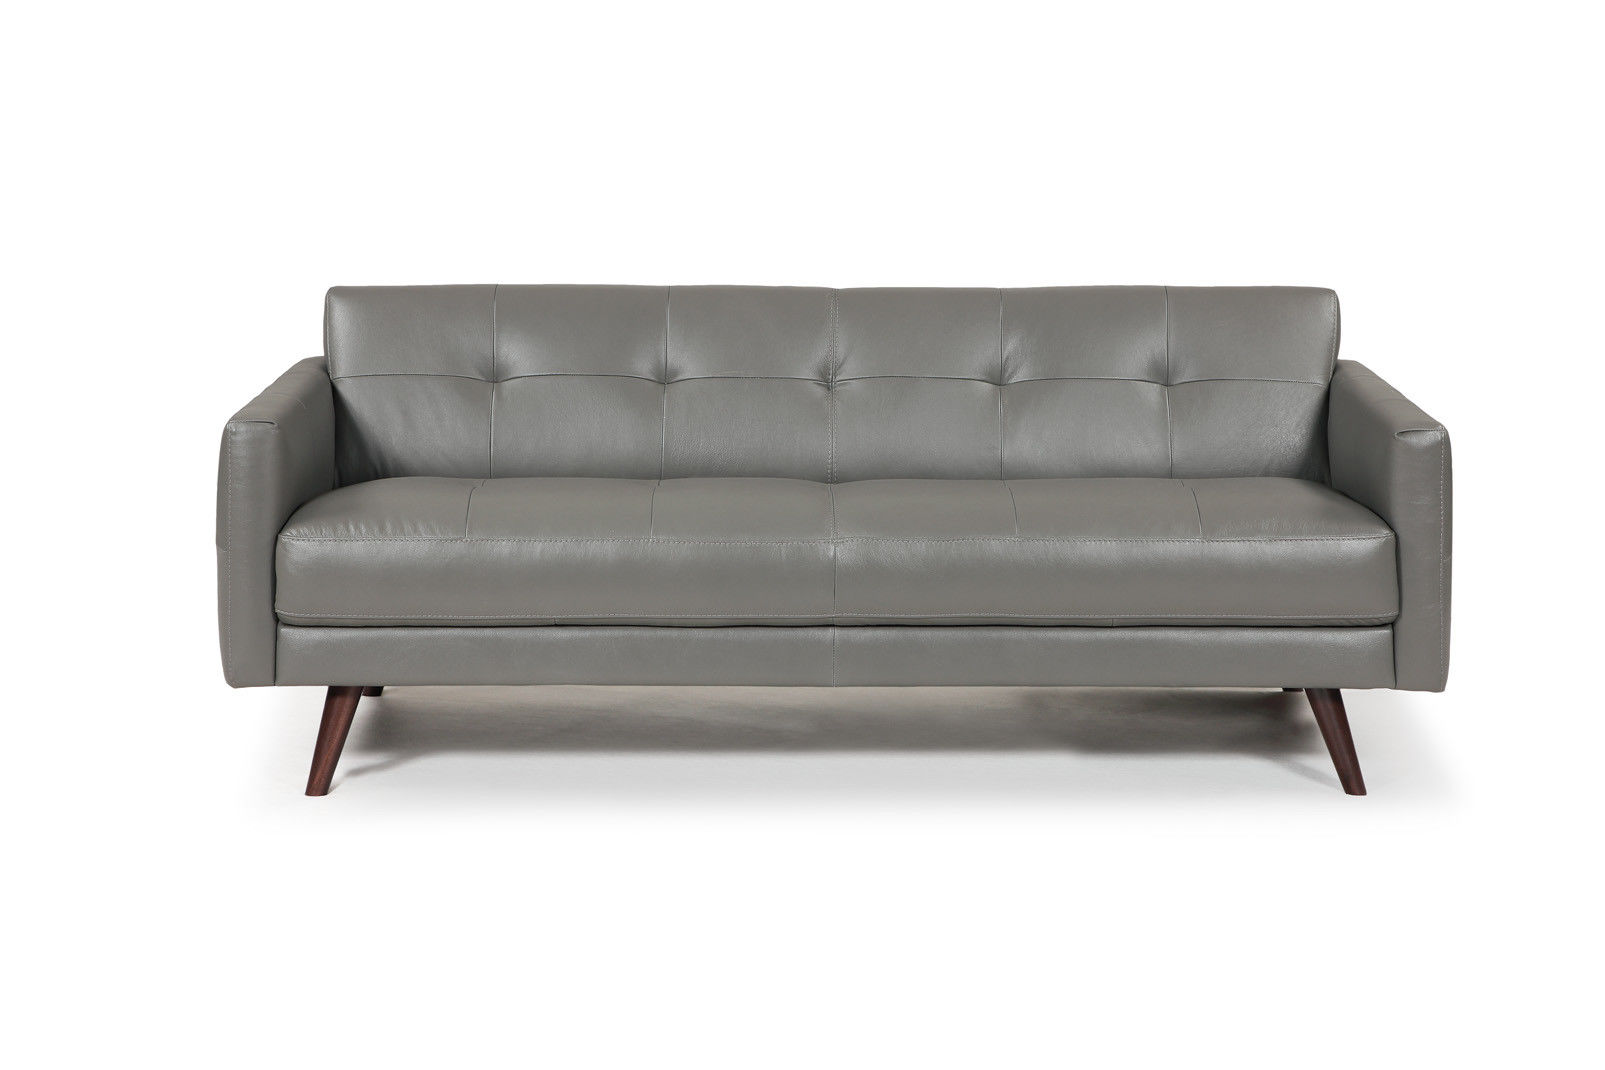 elegant sofa king snl portrait-Fascinating sofa King Snl Decoration